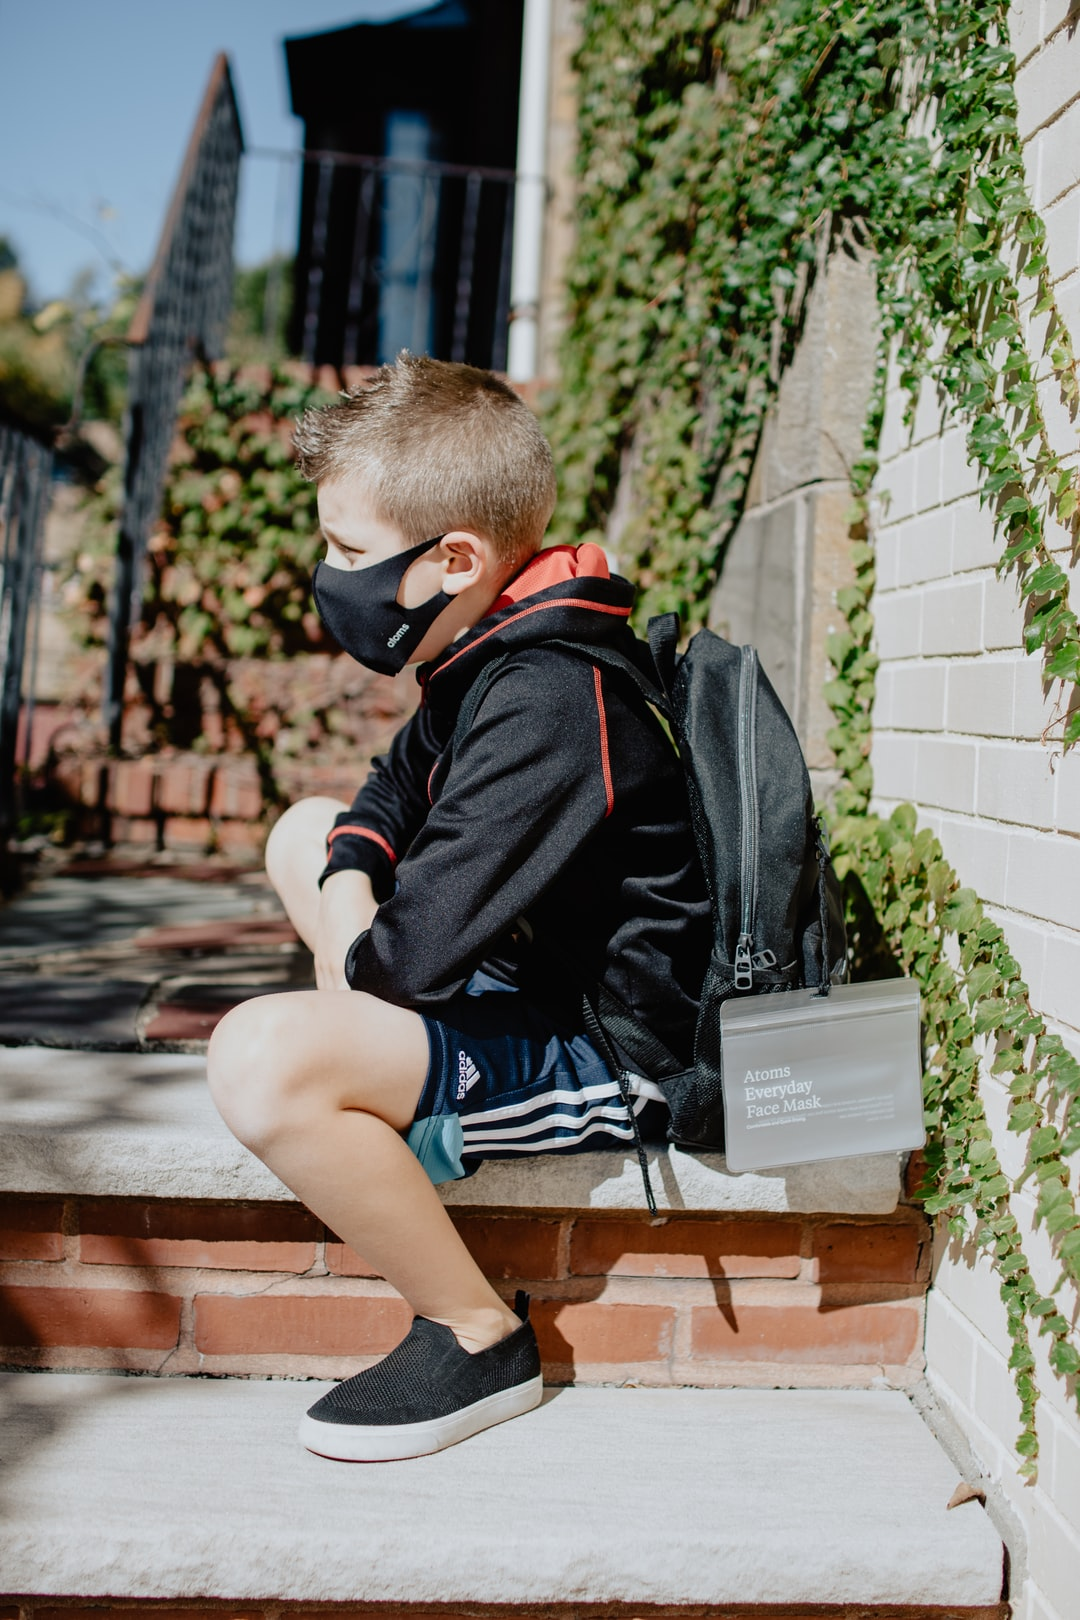 Boy sitting on a step with a mask on